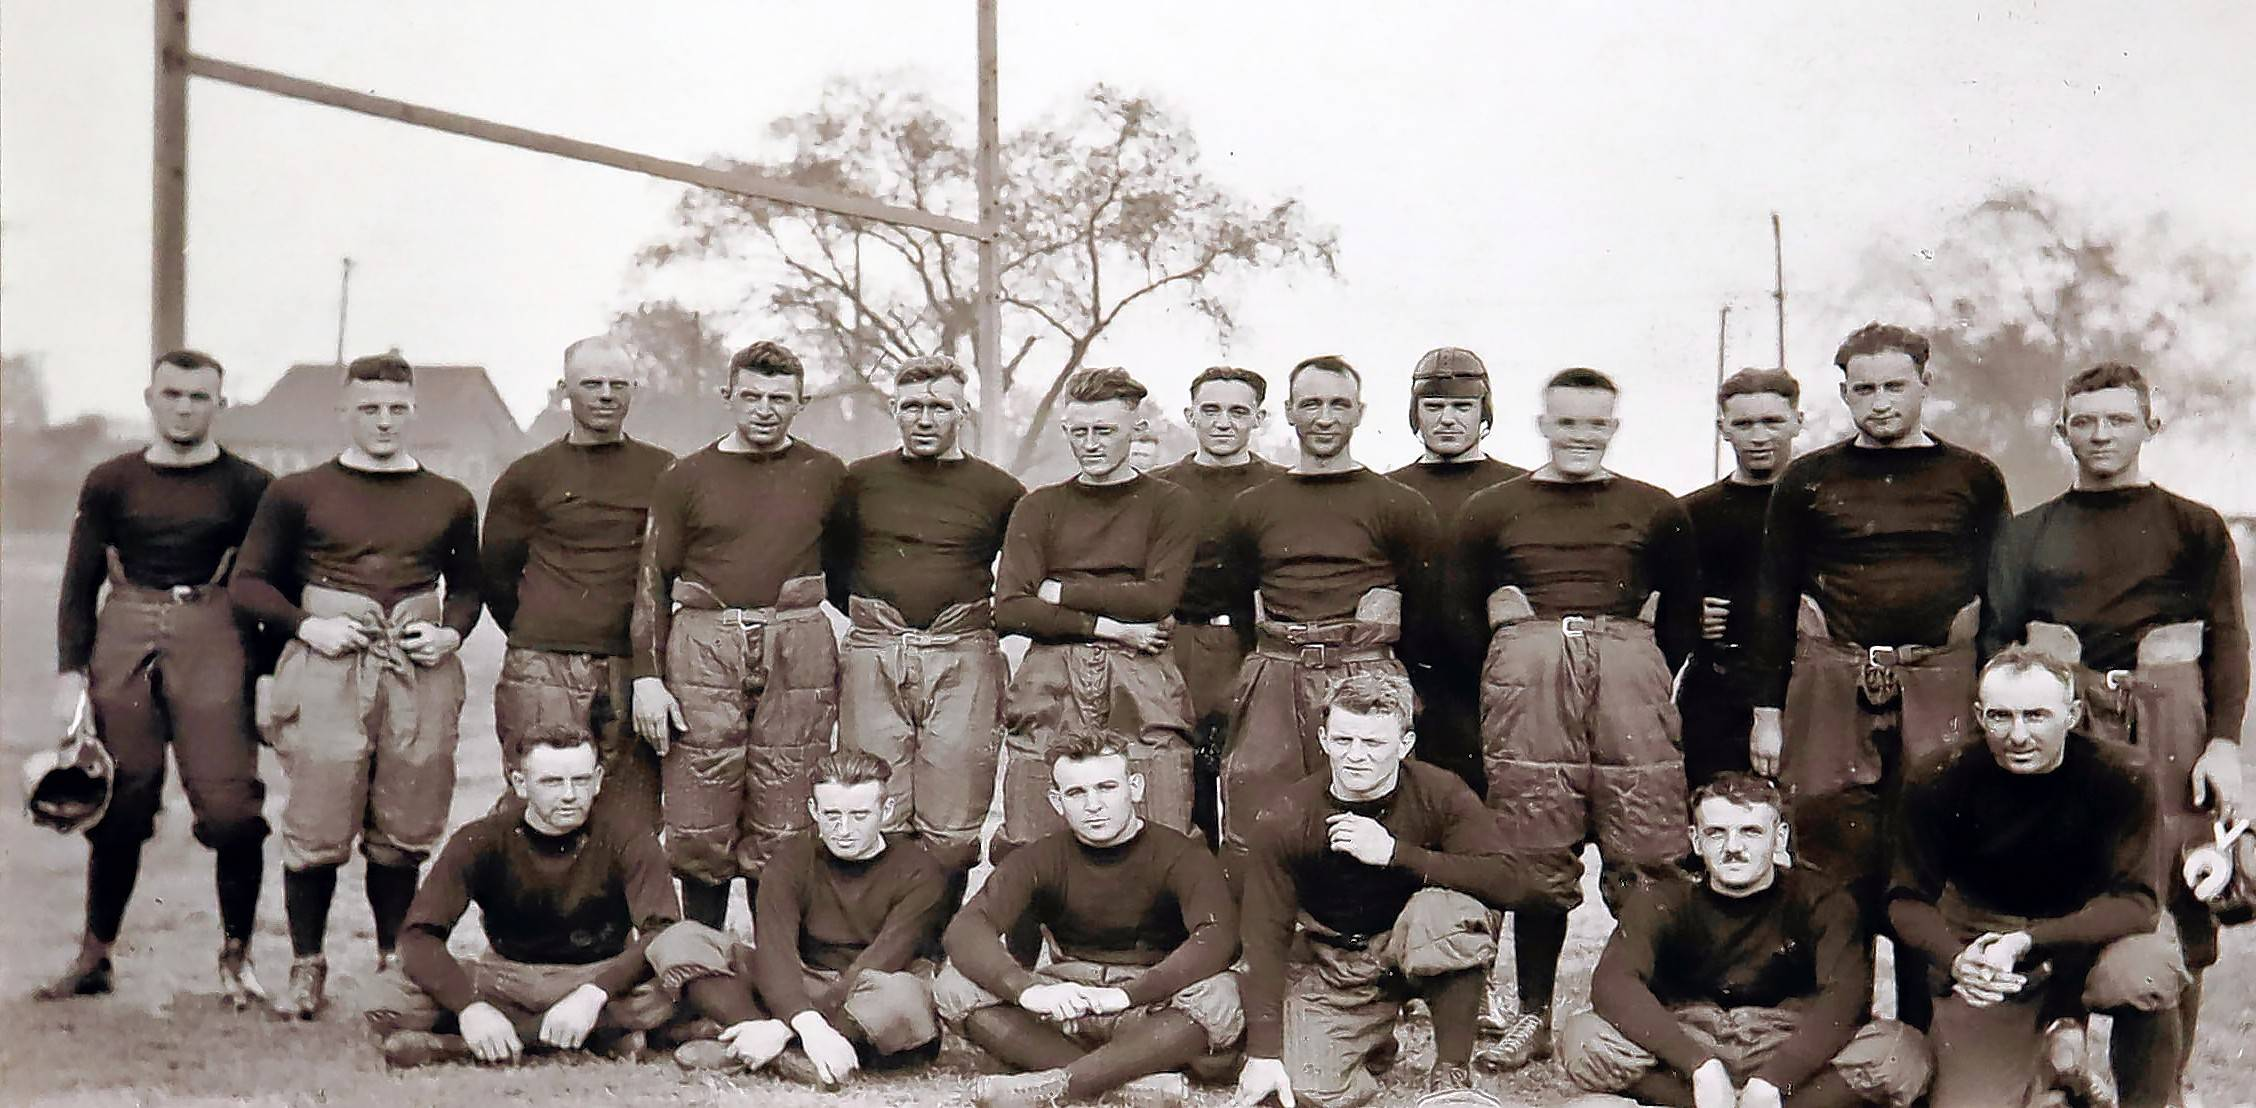 A team photo of the original Decatur Staleys.